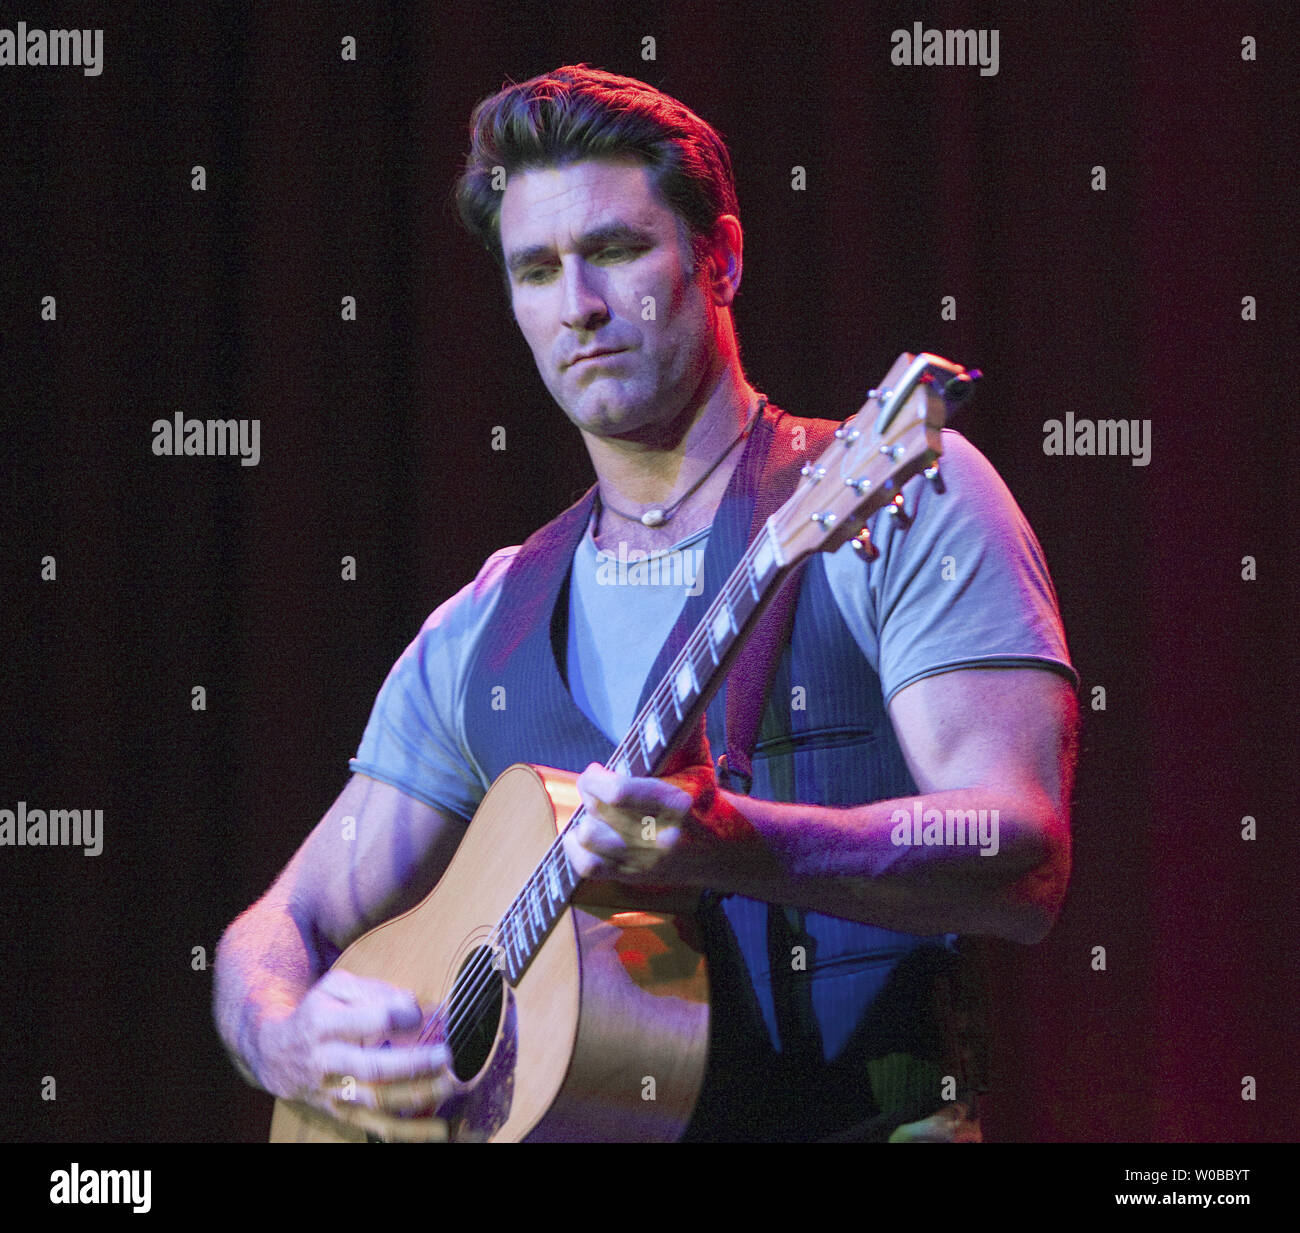 Pete Murray Stock Photos & Pete Murray Stock Images - Alamy